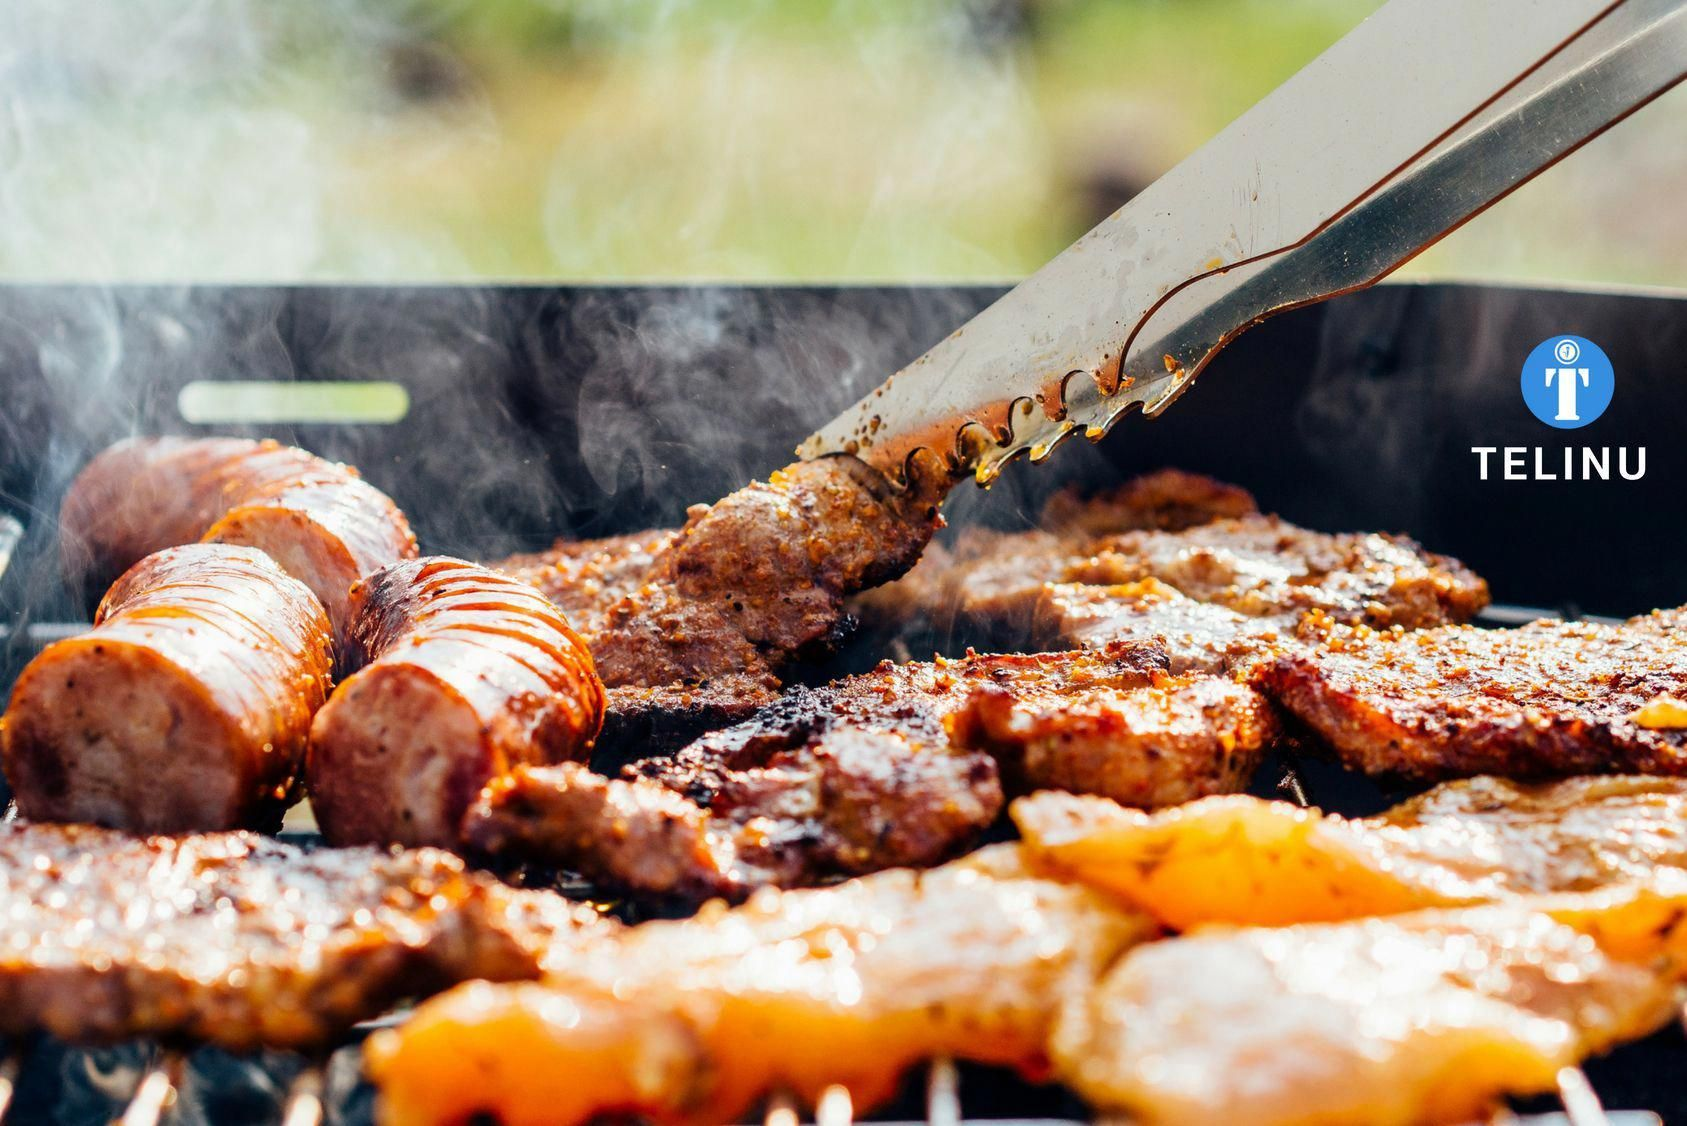 How to Use Barbecue Grill First of all, heat up the